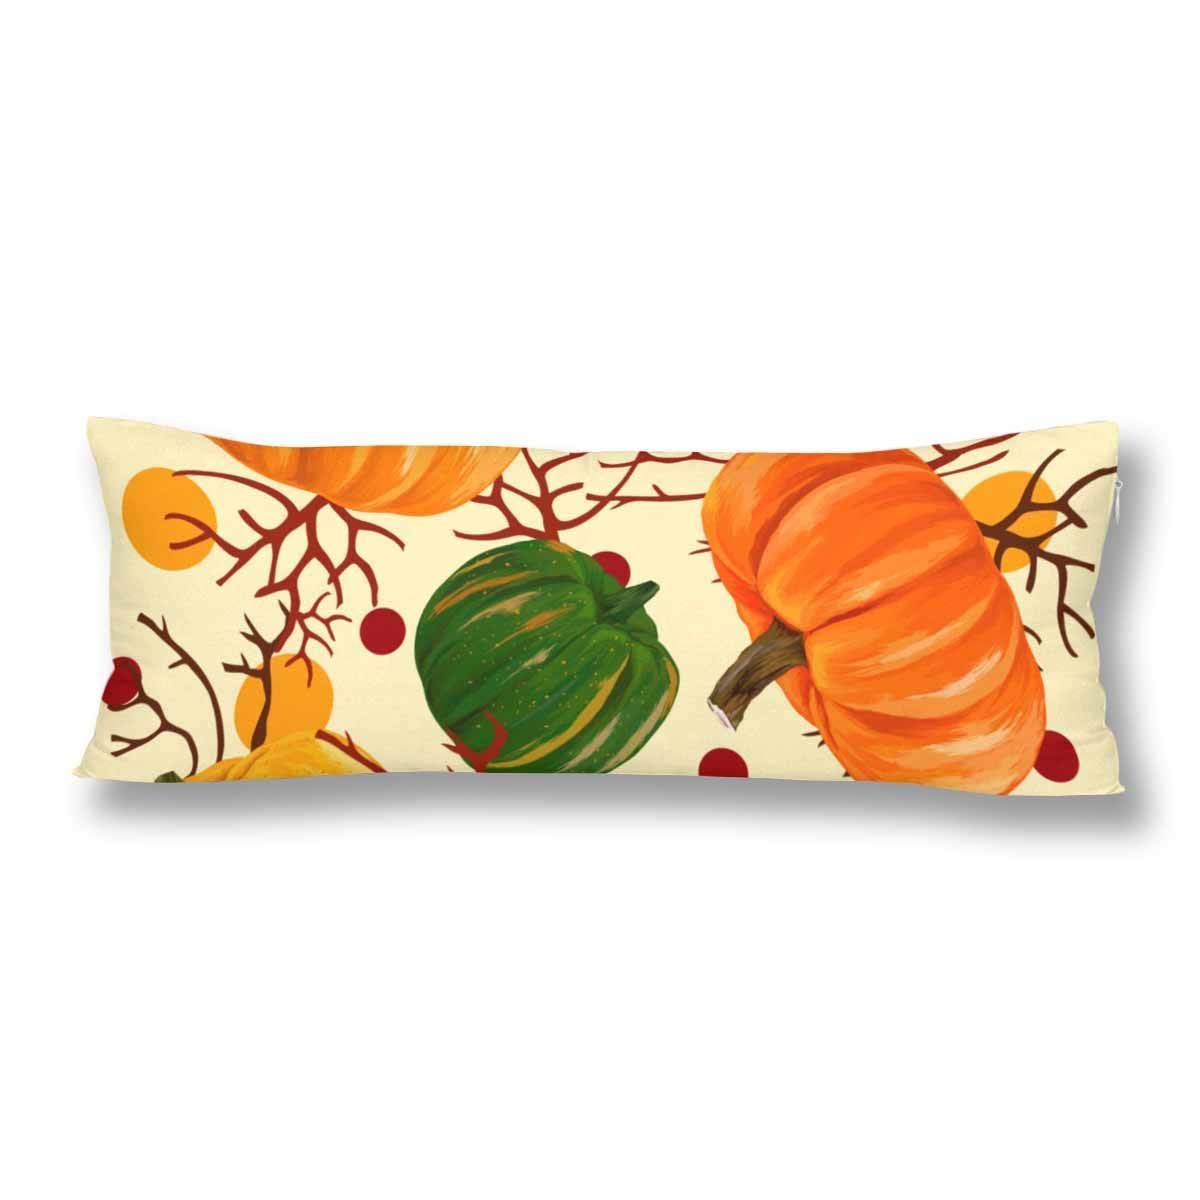 ABPHOTO Harvest Thansgiving Fall Autumn Pumpkin Festival Body Pillow Covers Case Protector 20x60 inch